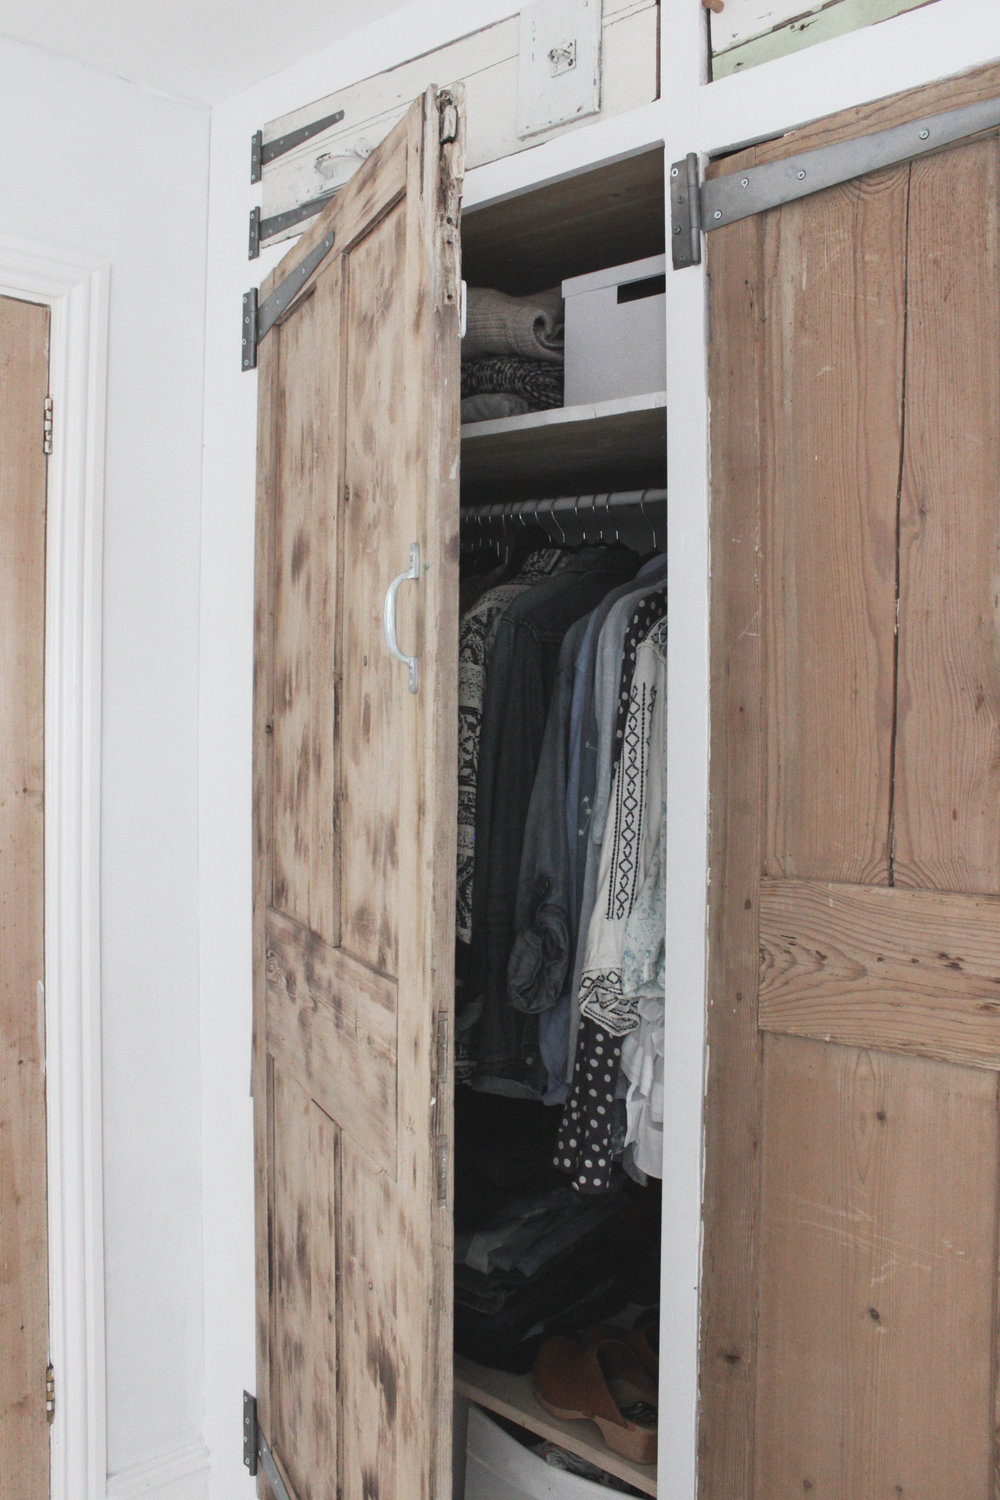 Build a faux build in wardrobe using reclaimed doors and an Ikea Ivar frame, tutorial by www.hestershandmadehome.com